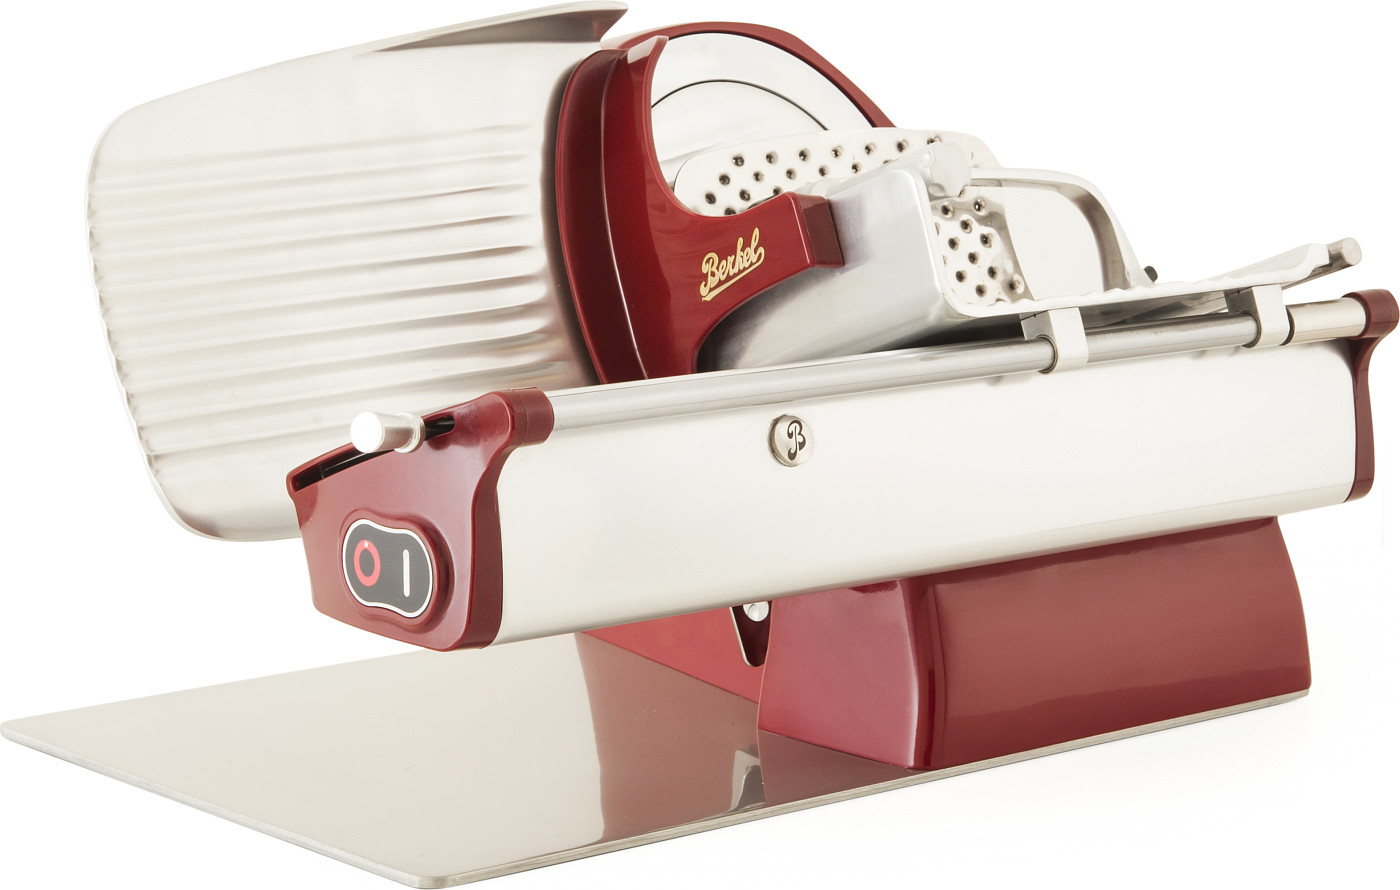 Berkel Home Line 200 Rouge